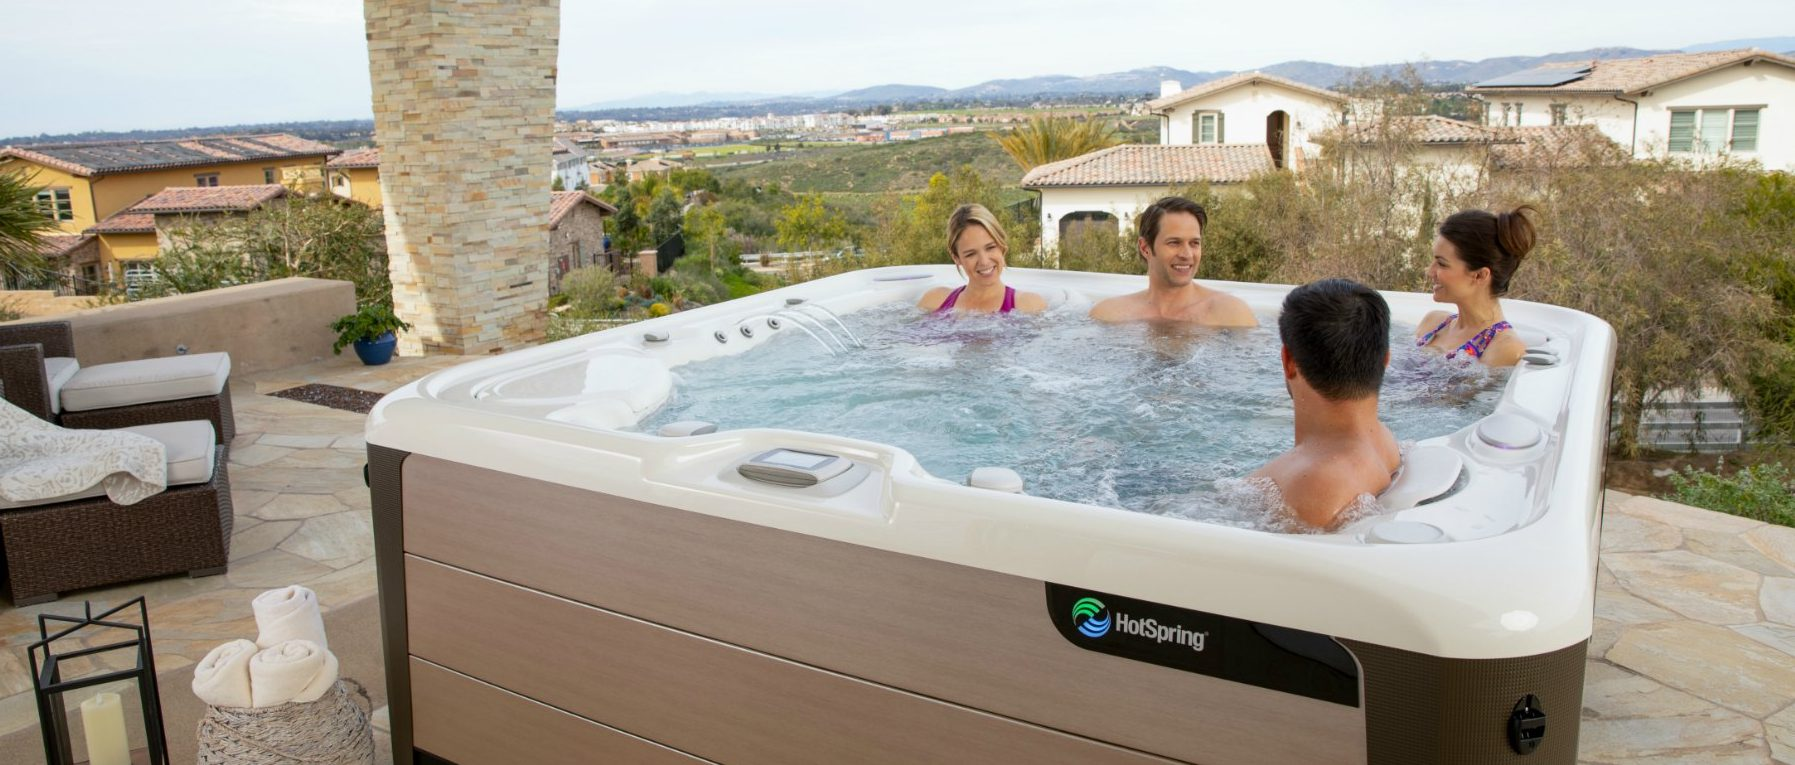 How to Identify a Quality Hot Tub